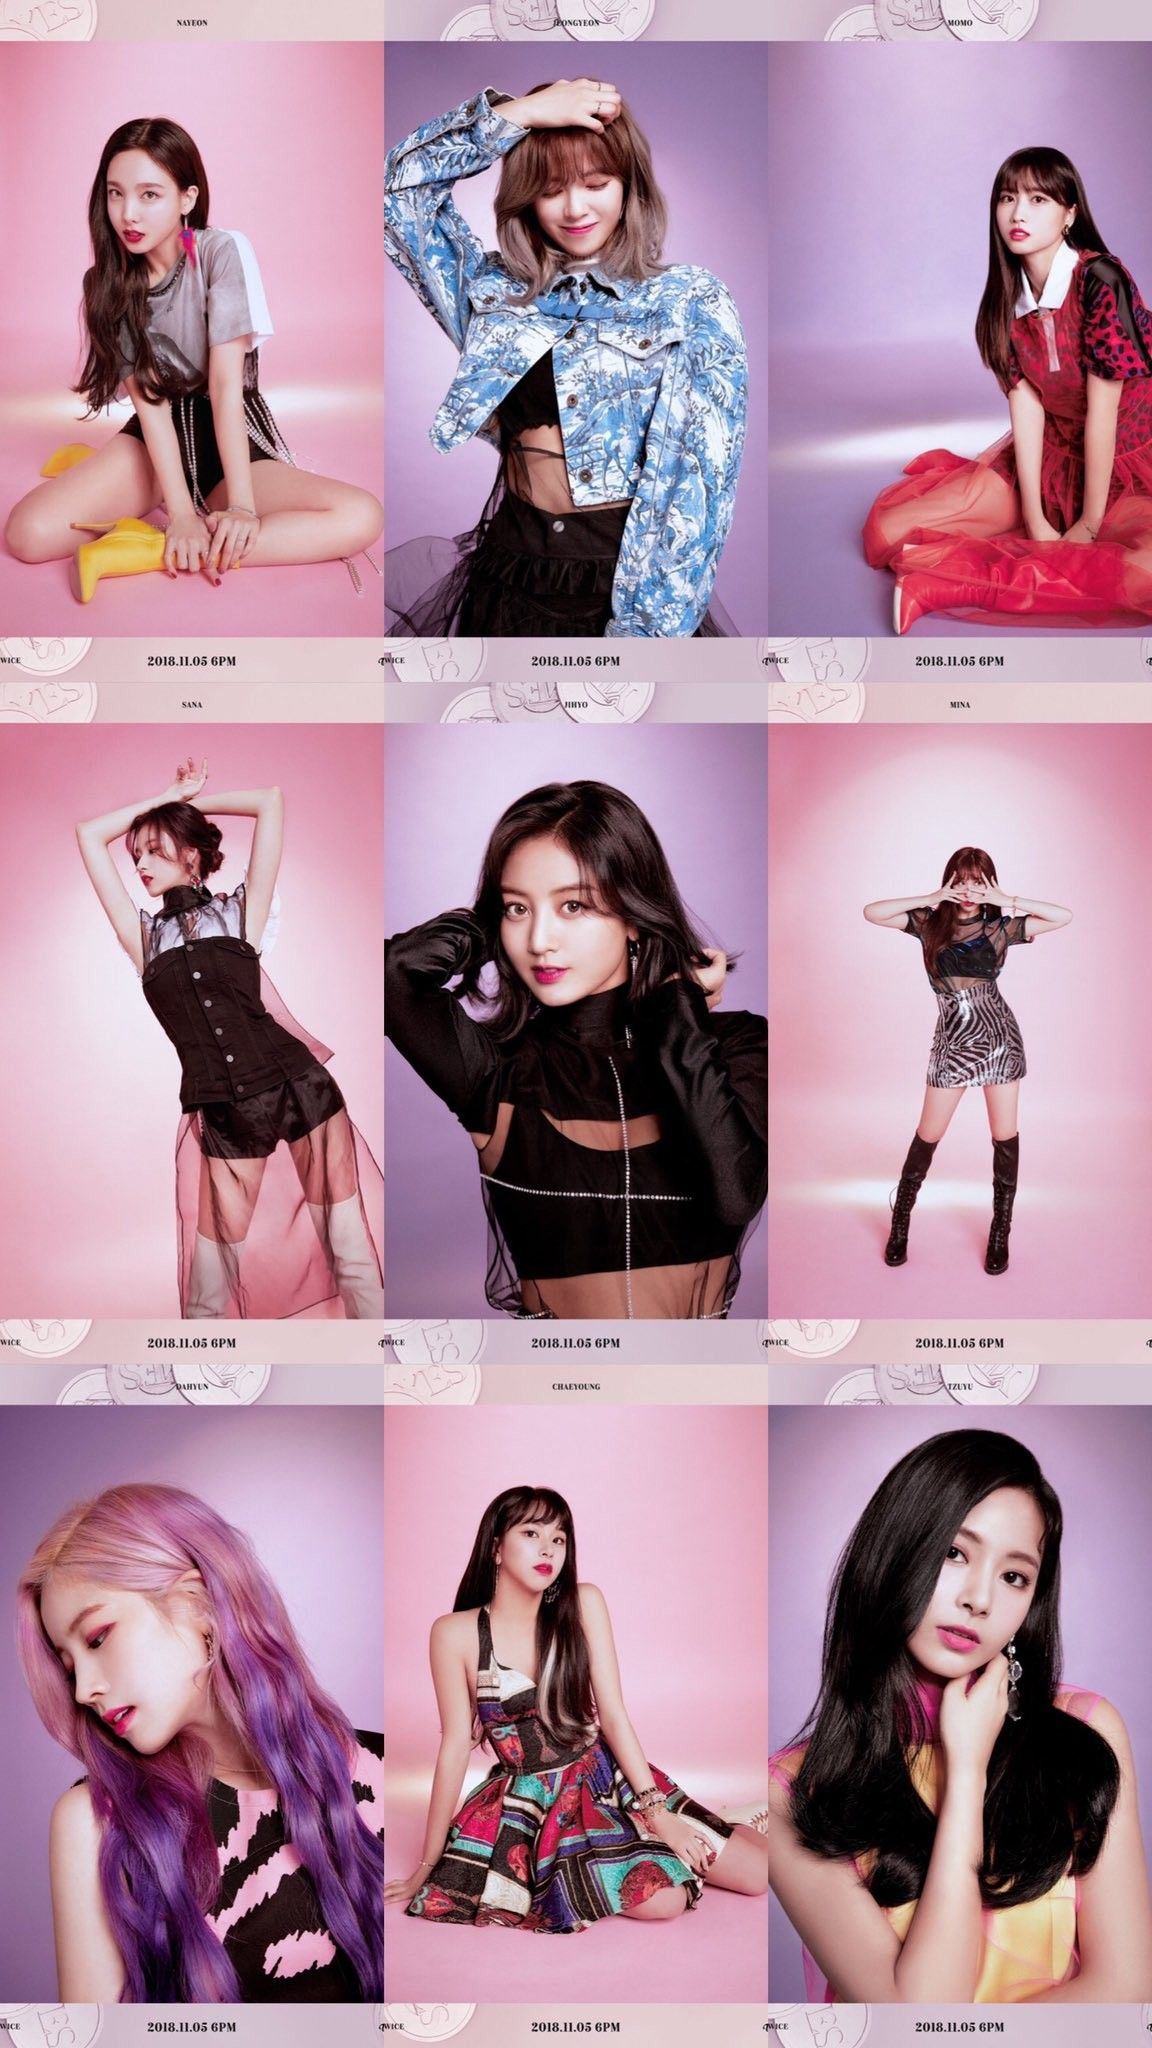 Twice Yes Or Yes Twicemedia: TWICE #Yes_or_Yes #The_6th_Mini_Album